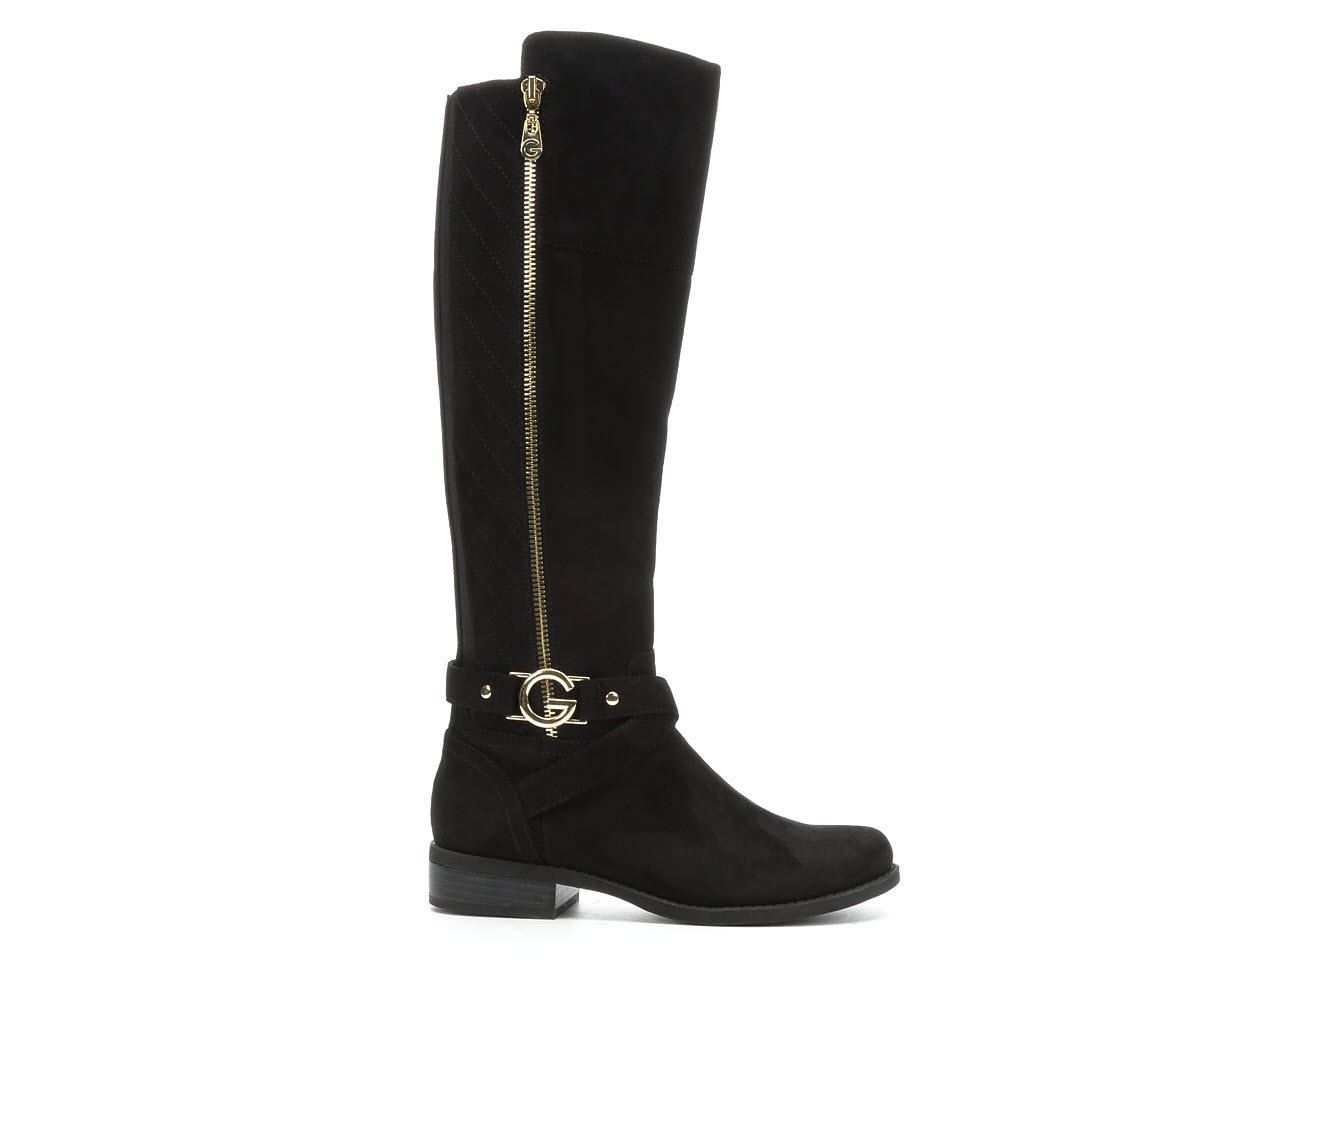 G By Guess Hillie Women's Boots (Black - Faux Leather)